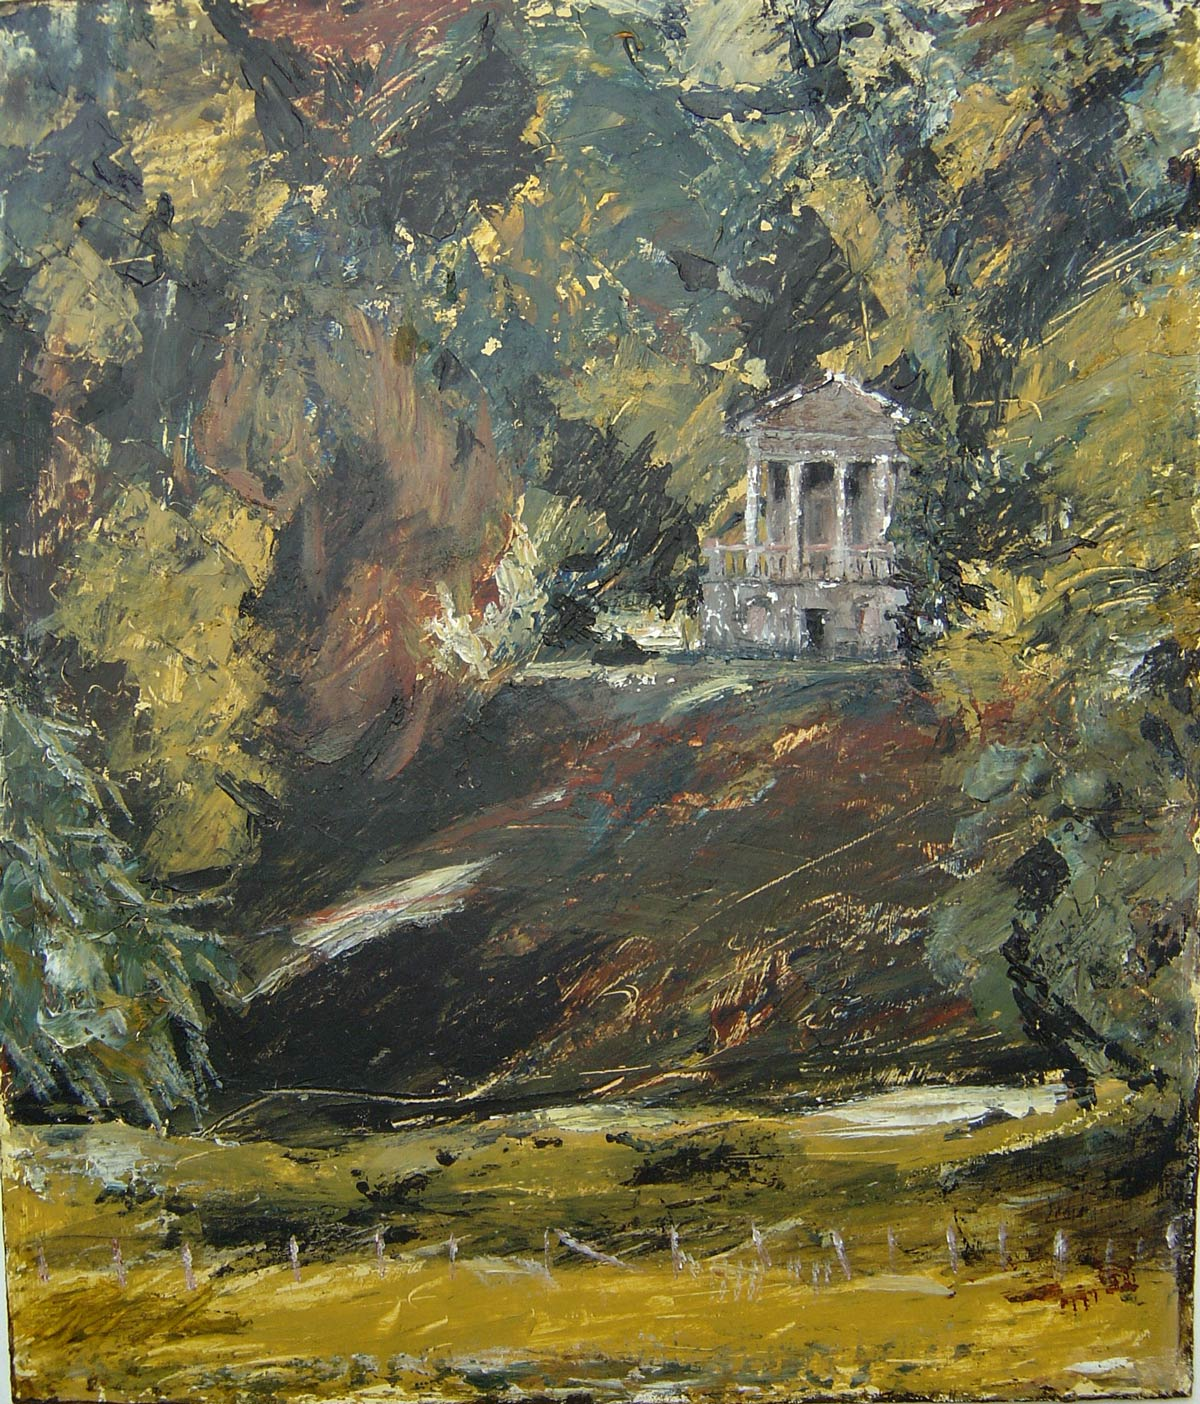 The Folly at Wilton 36 x 30 cm